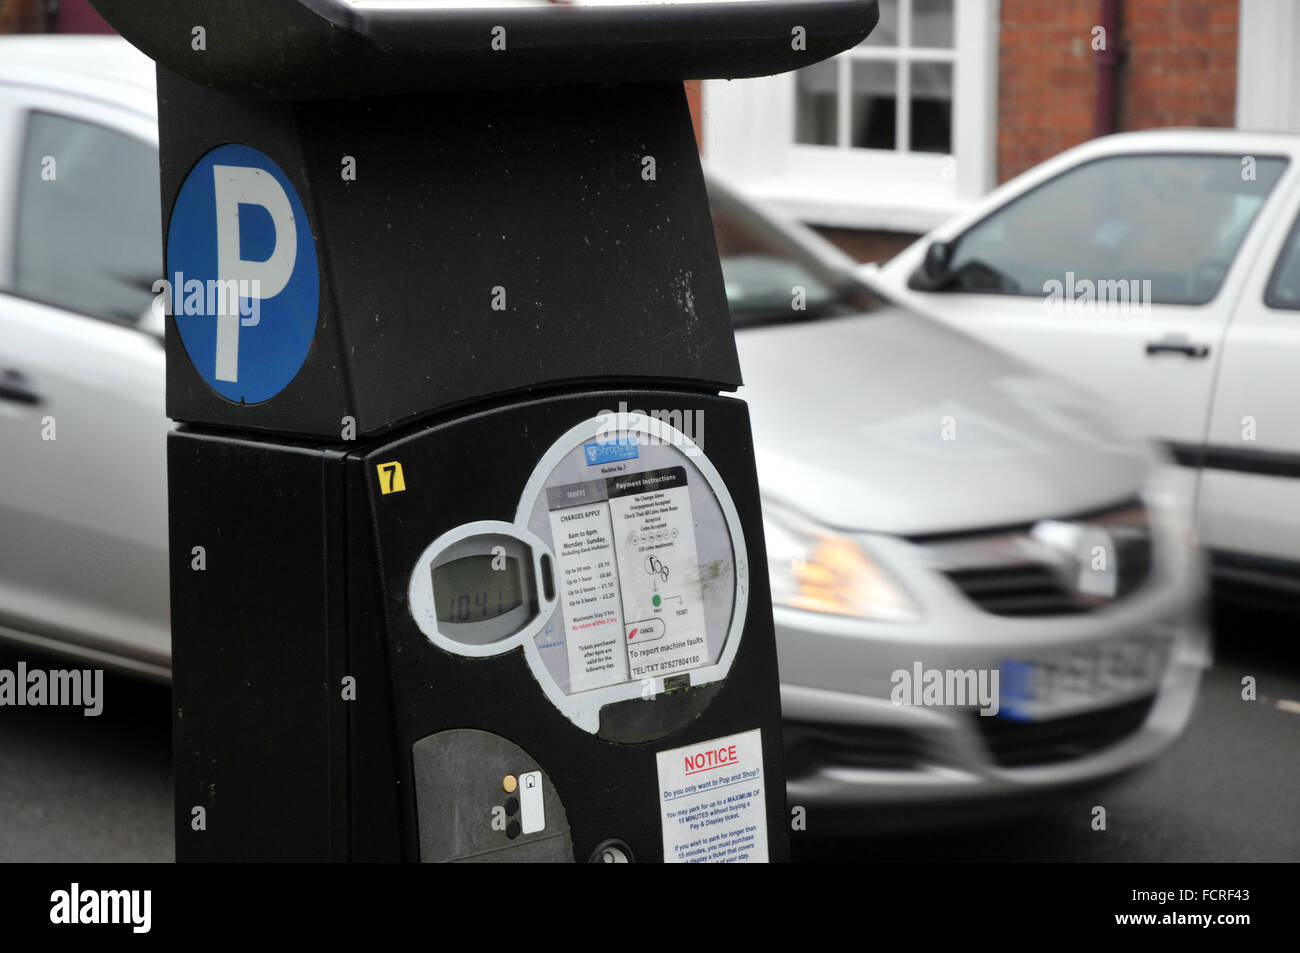 A car parking meter in Ludlow, Shropshire. - Stock Image